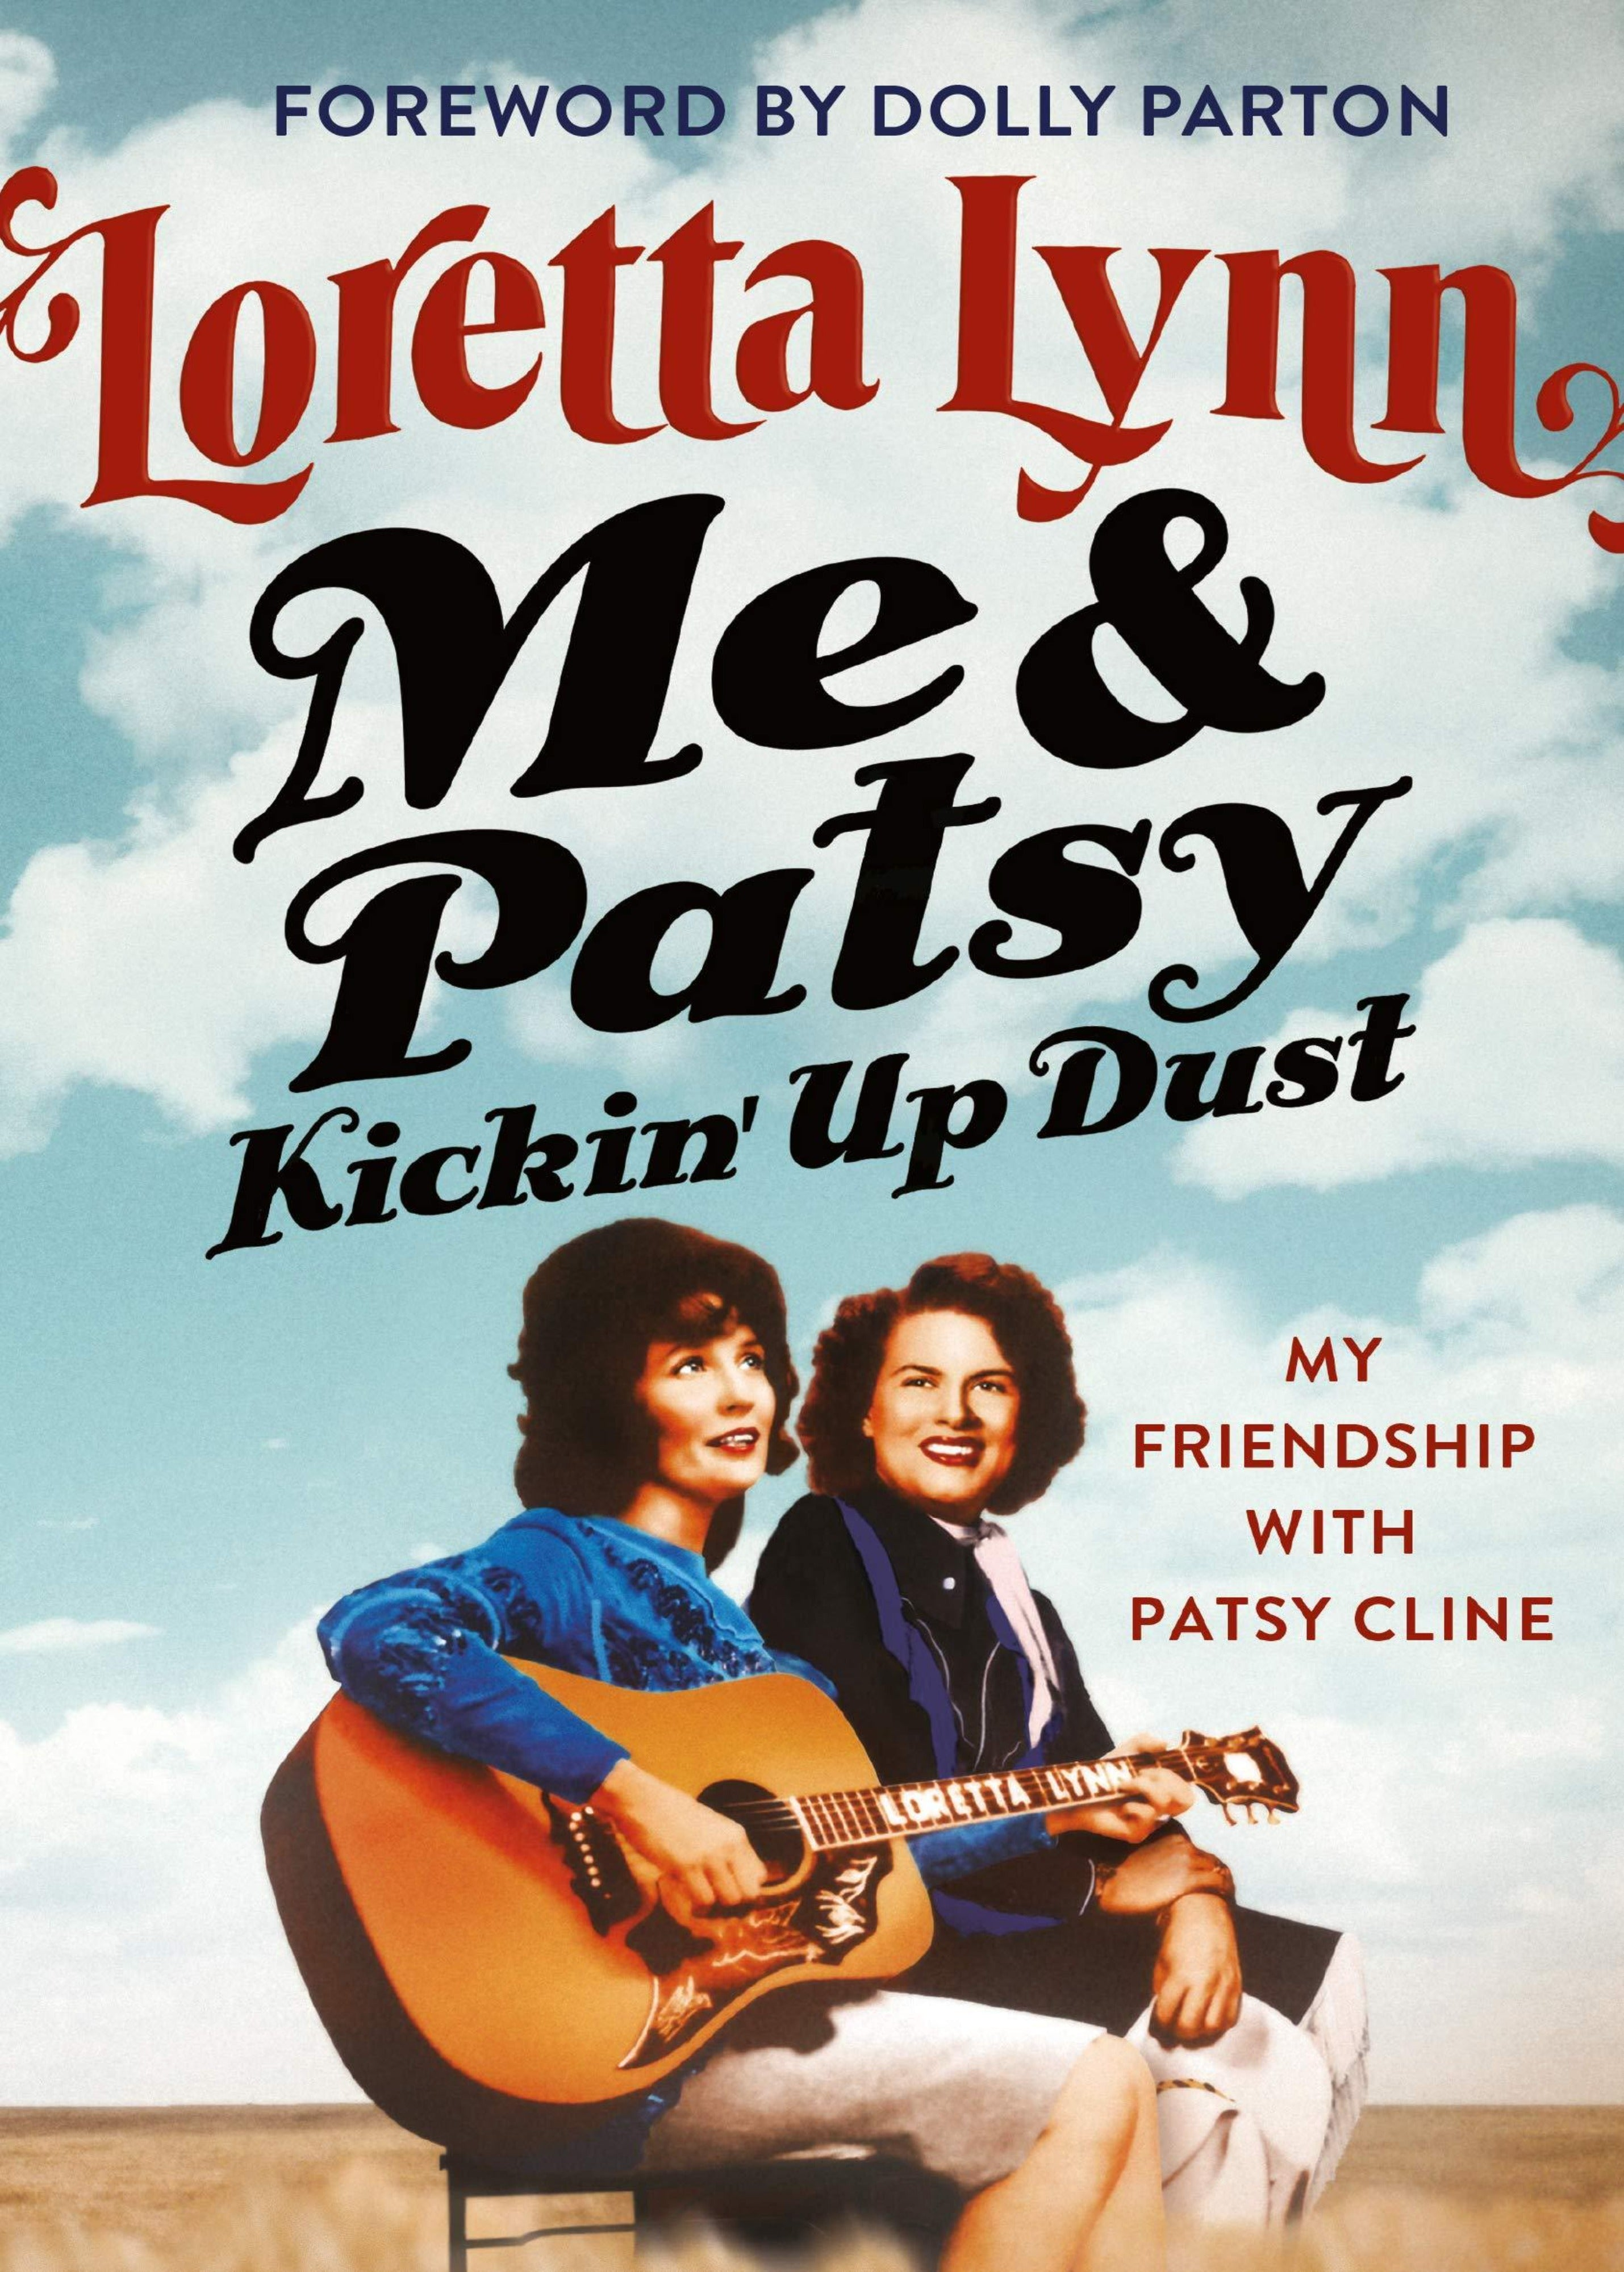 Me & Patsy Kickin' Up Dust: My Friendship with Patsy Cline (Loretta Lynn)